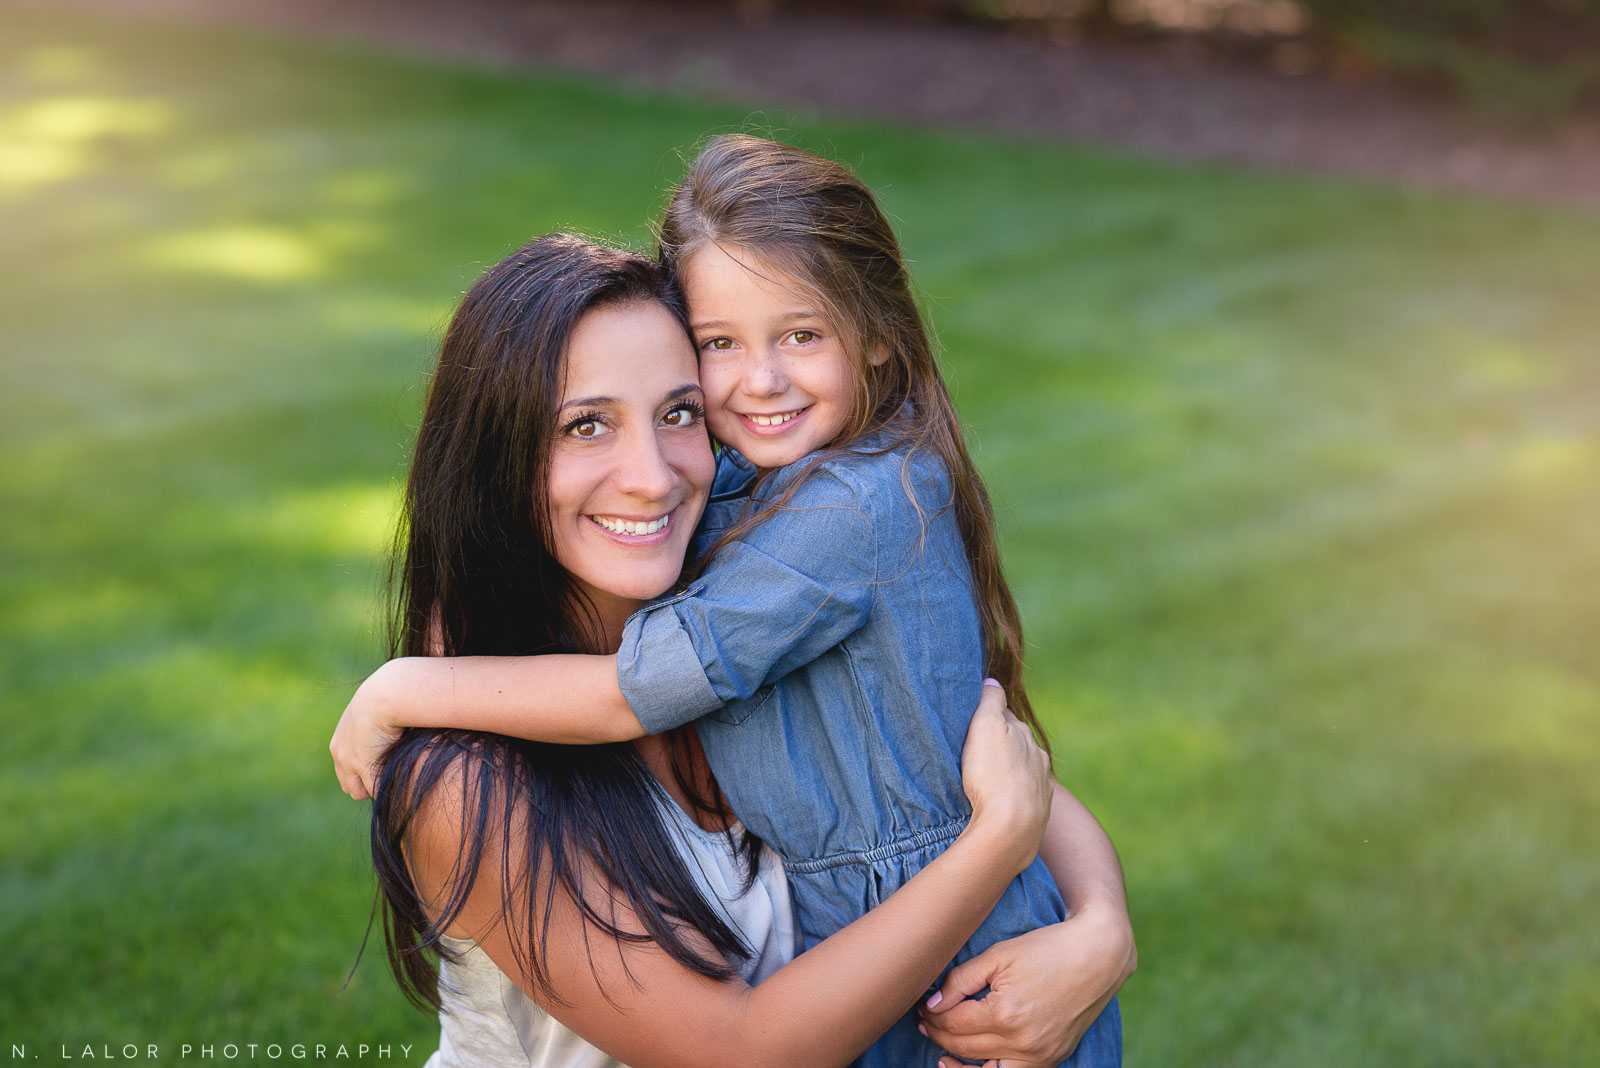 A lifestyle portrait of Mom and her daughter by N. Lalor Photography.